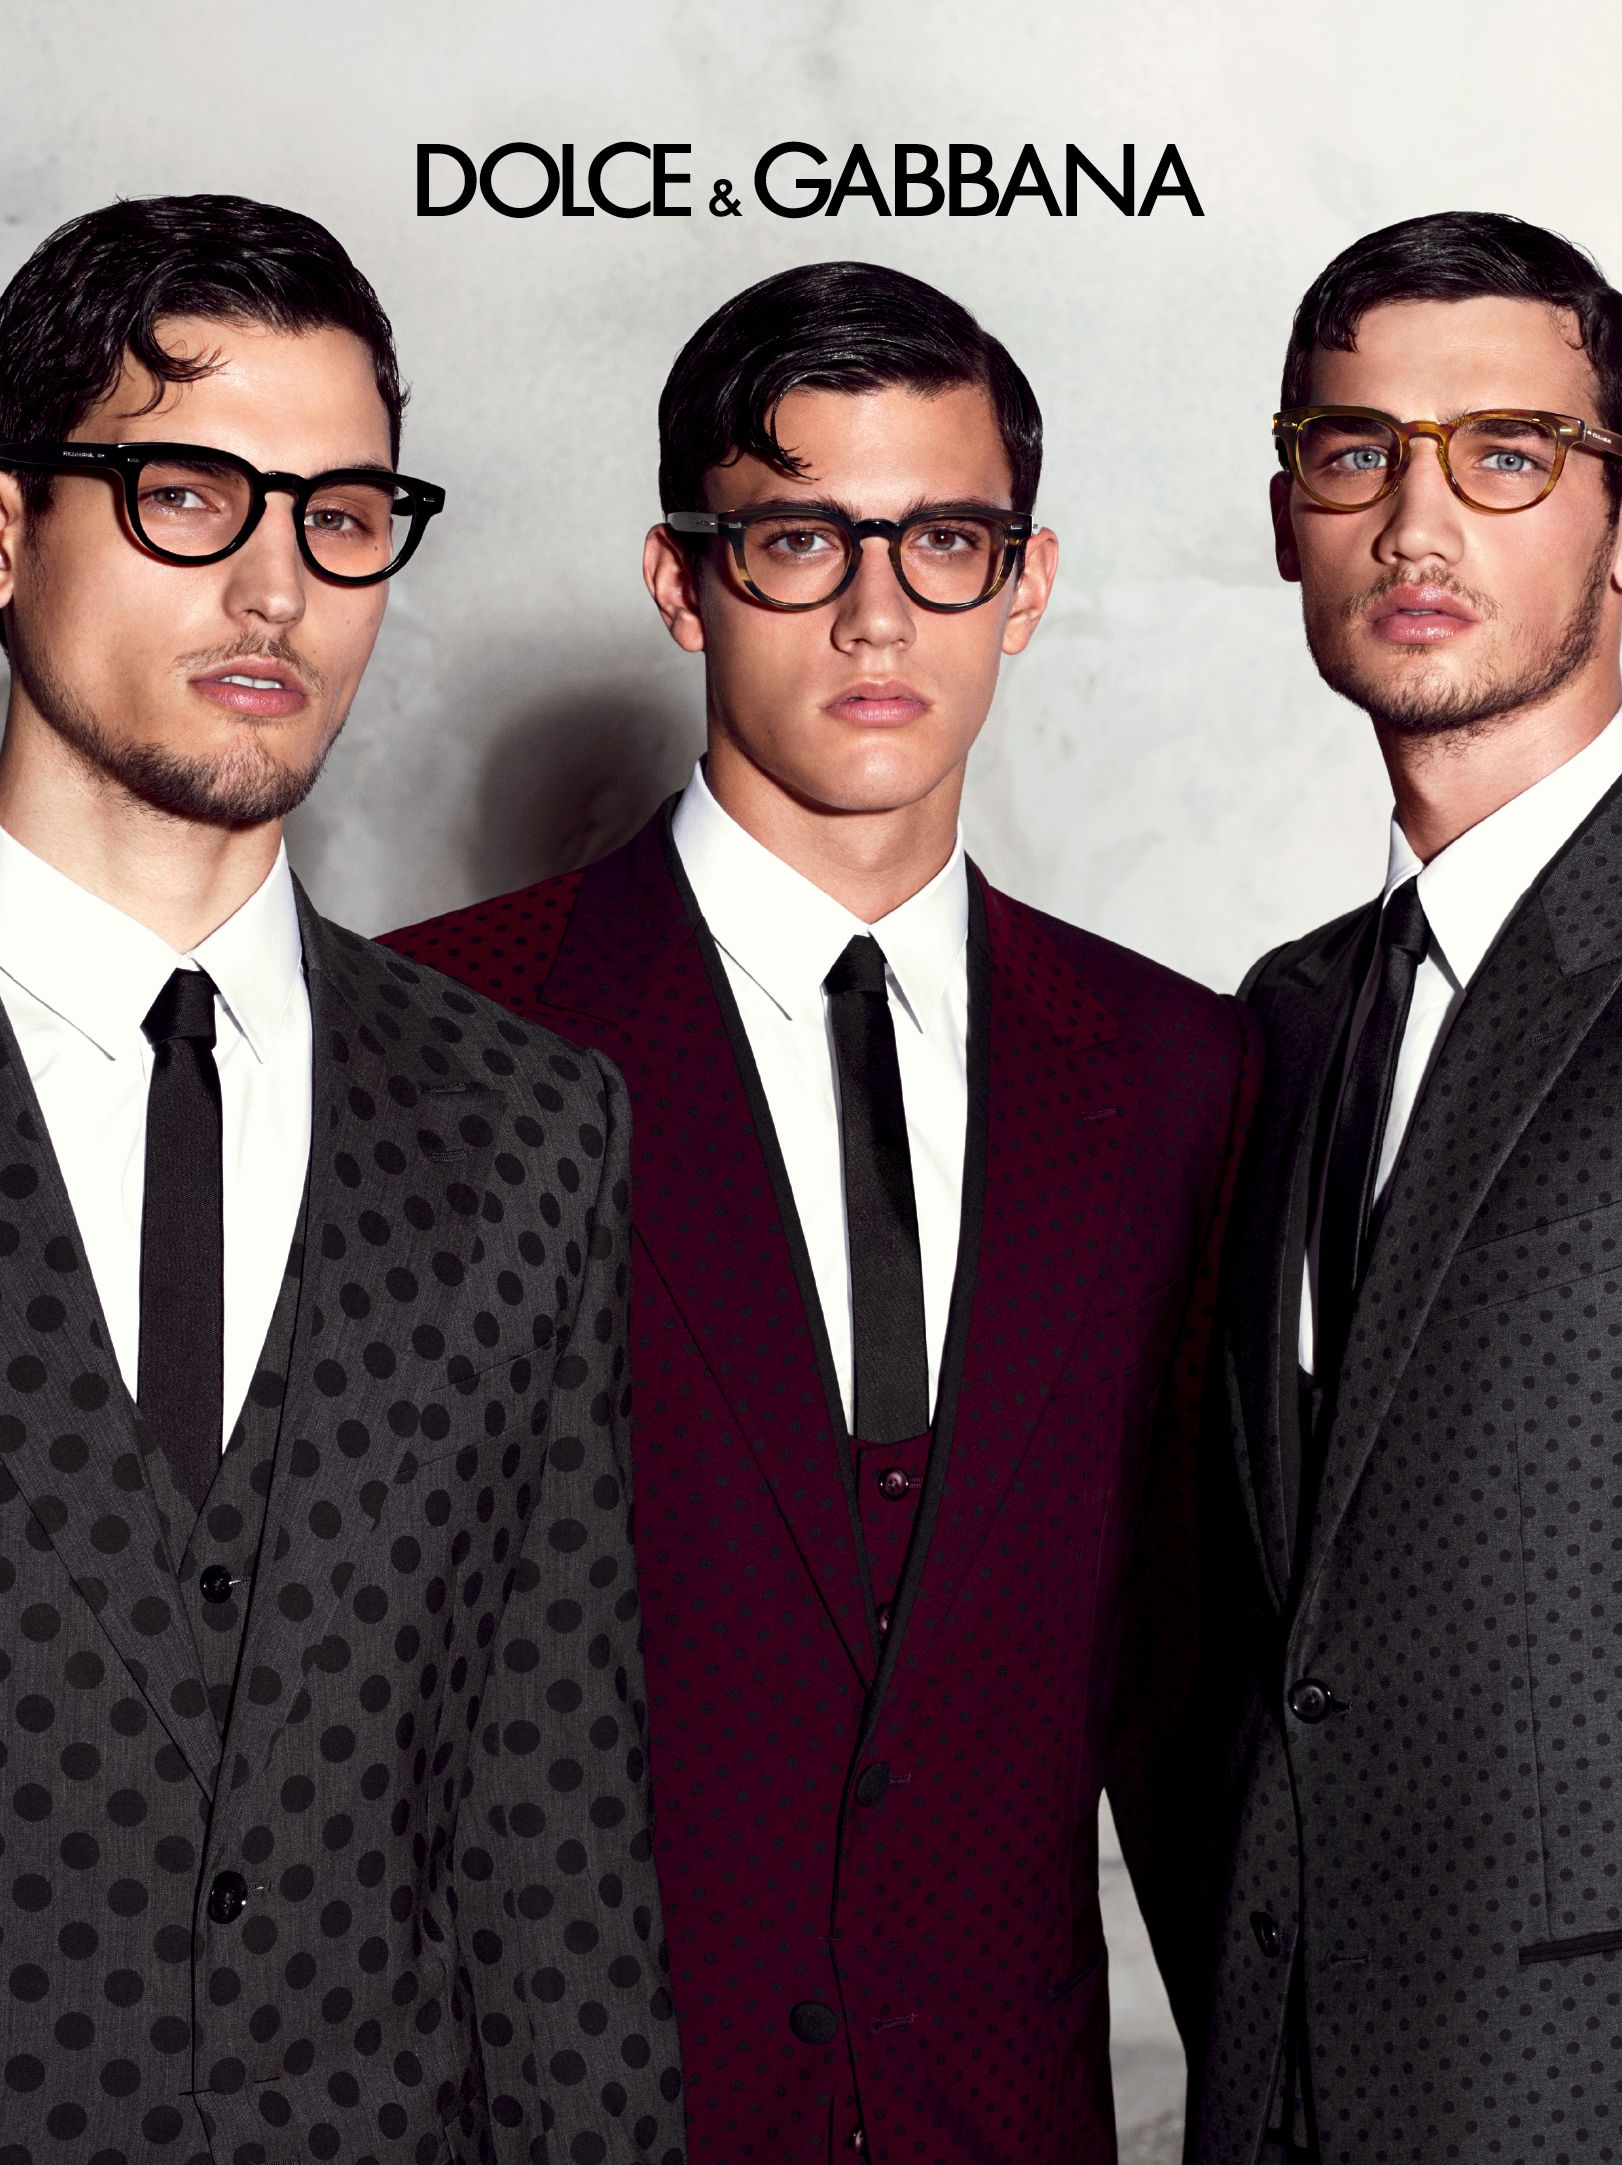 Dolce Gabbana Summer 2015 Eyewear Advertising Campaign.  www.dolcegabbana.com eyewear 0a1cd5203a3